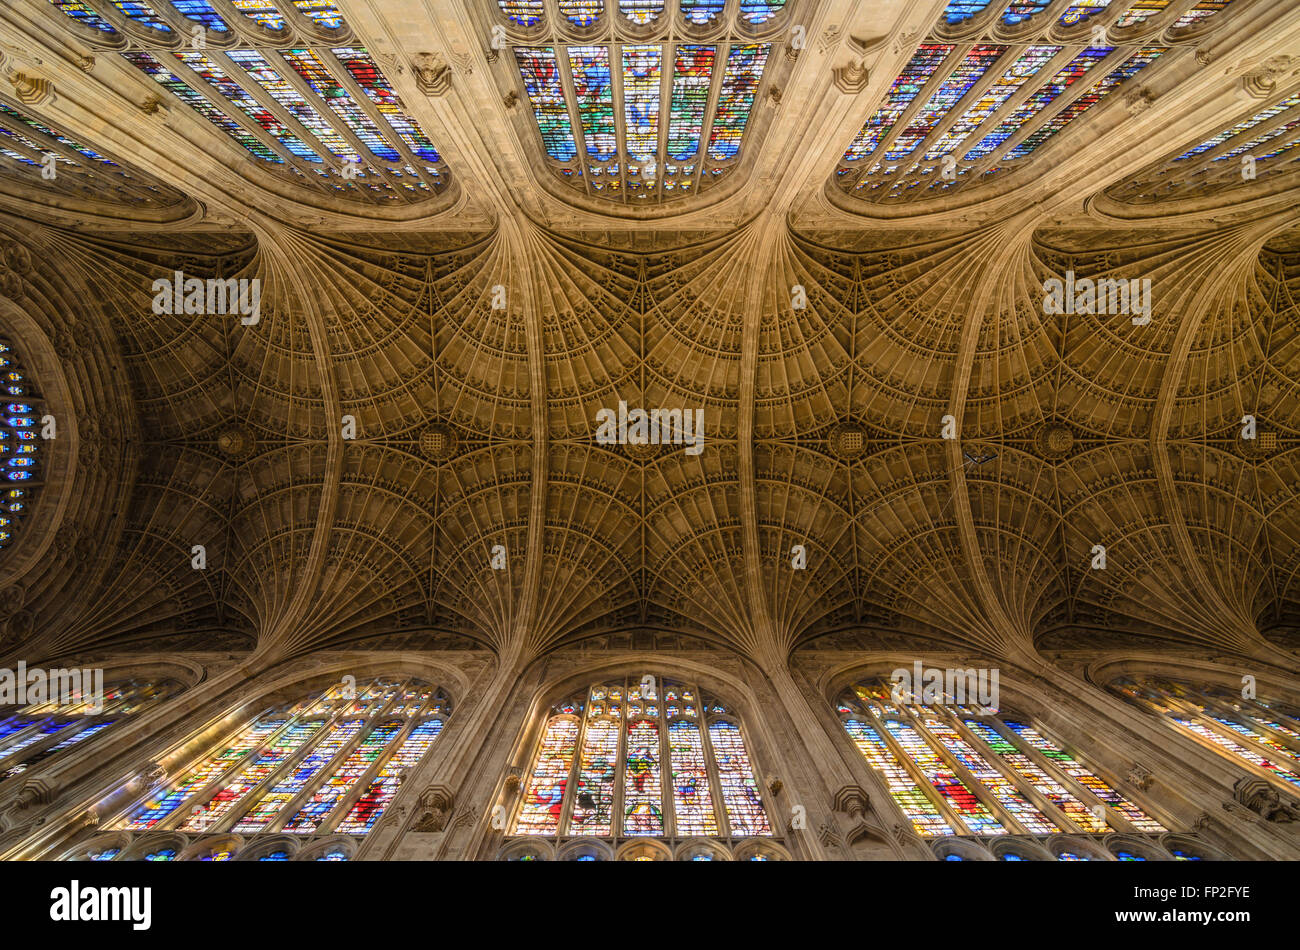 The ornate ceiling of Kings College Chapel, Kings College, University of Cambridge, England, United Kingdom. Stock Photo